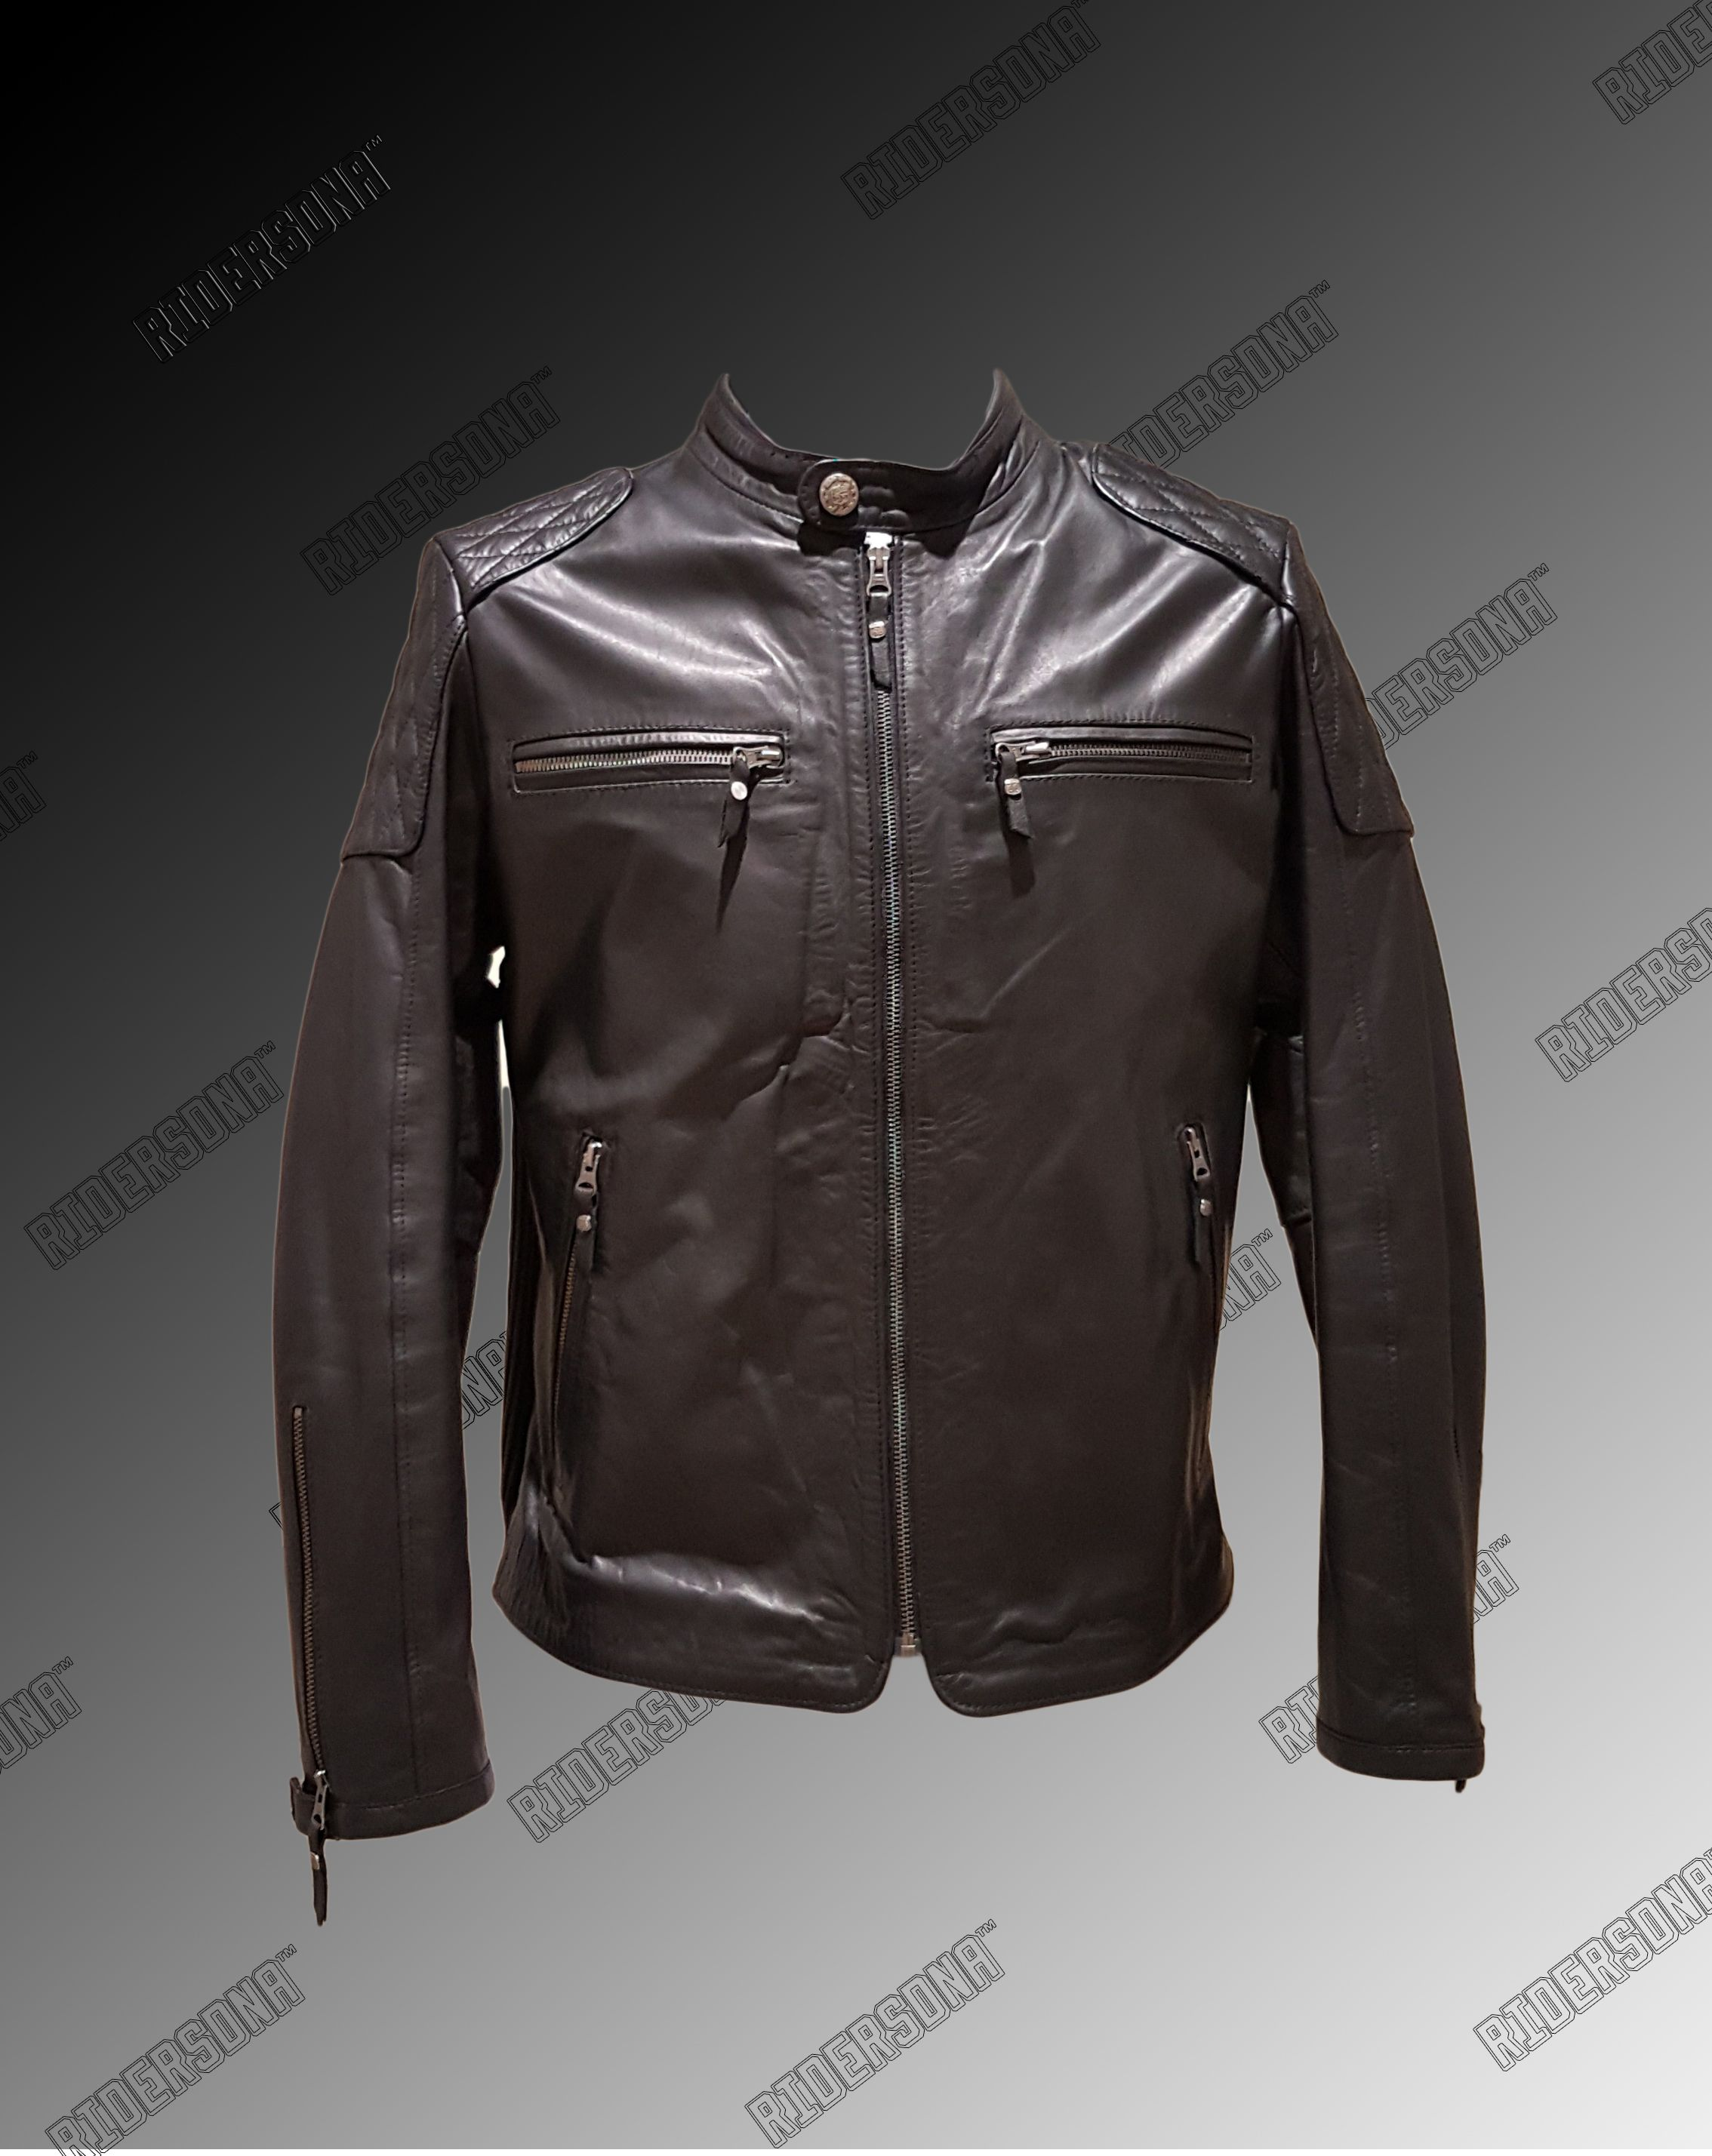 For Extreme Bikers Cowhide Genuine Leather Jackets From Turkey Dm Us For More Information Or Go To Www Ridersdna Com F Leather Jacket Riders Jacket Fashion [ 2857 x 2268 Pixel ]